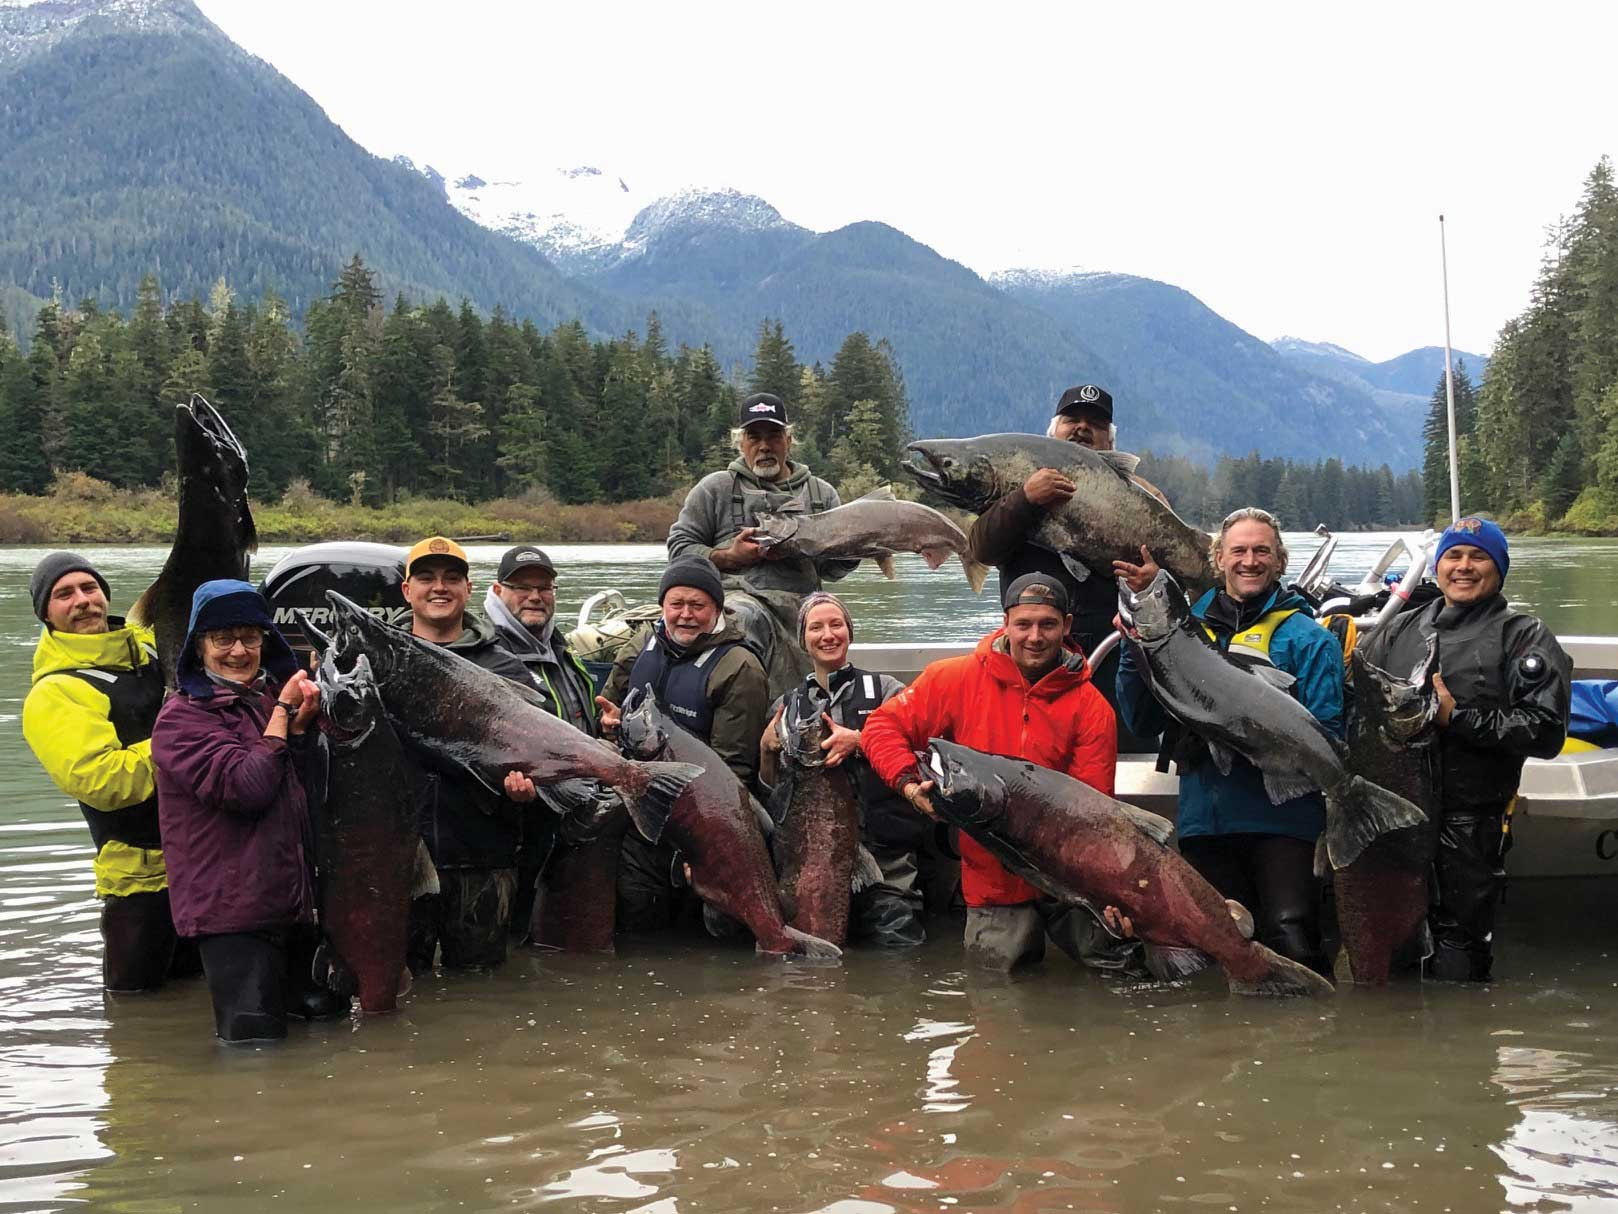 There are only two river systems in the world that are considered statistically significant for the production of salmon over 40 pounds – the Wannock and Kitsumkalum rivers.